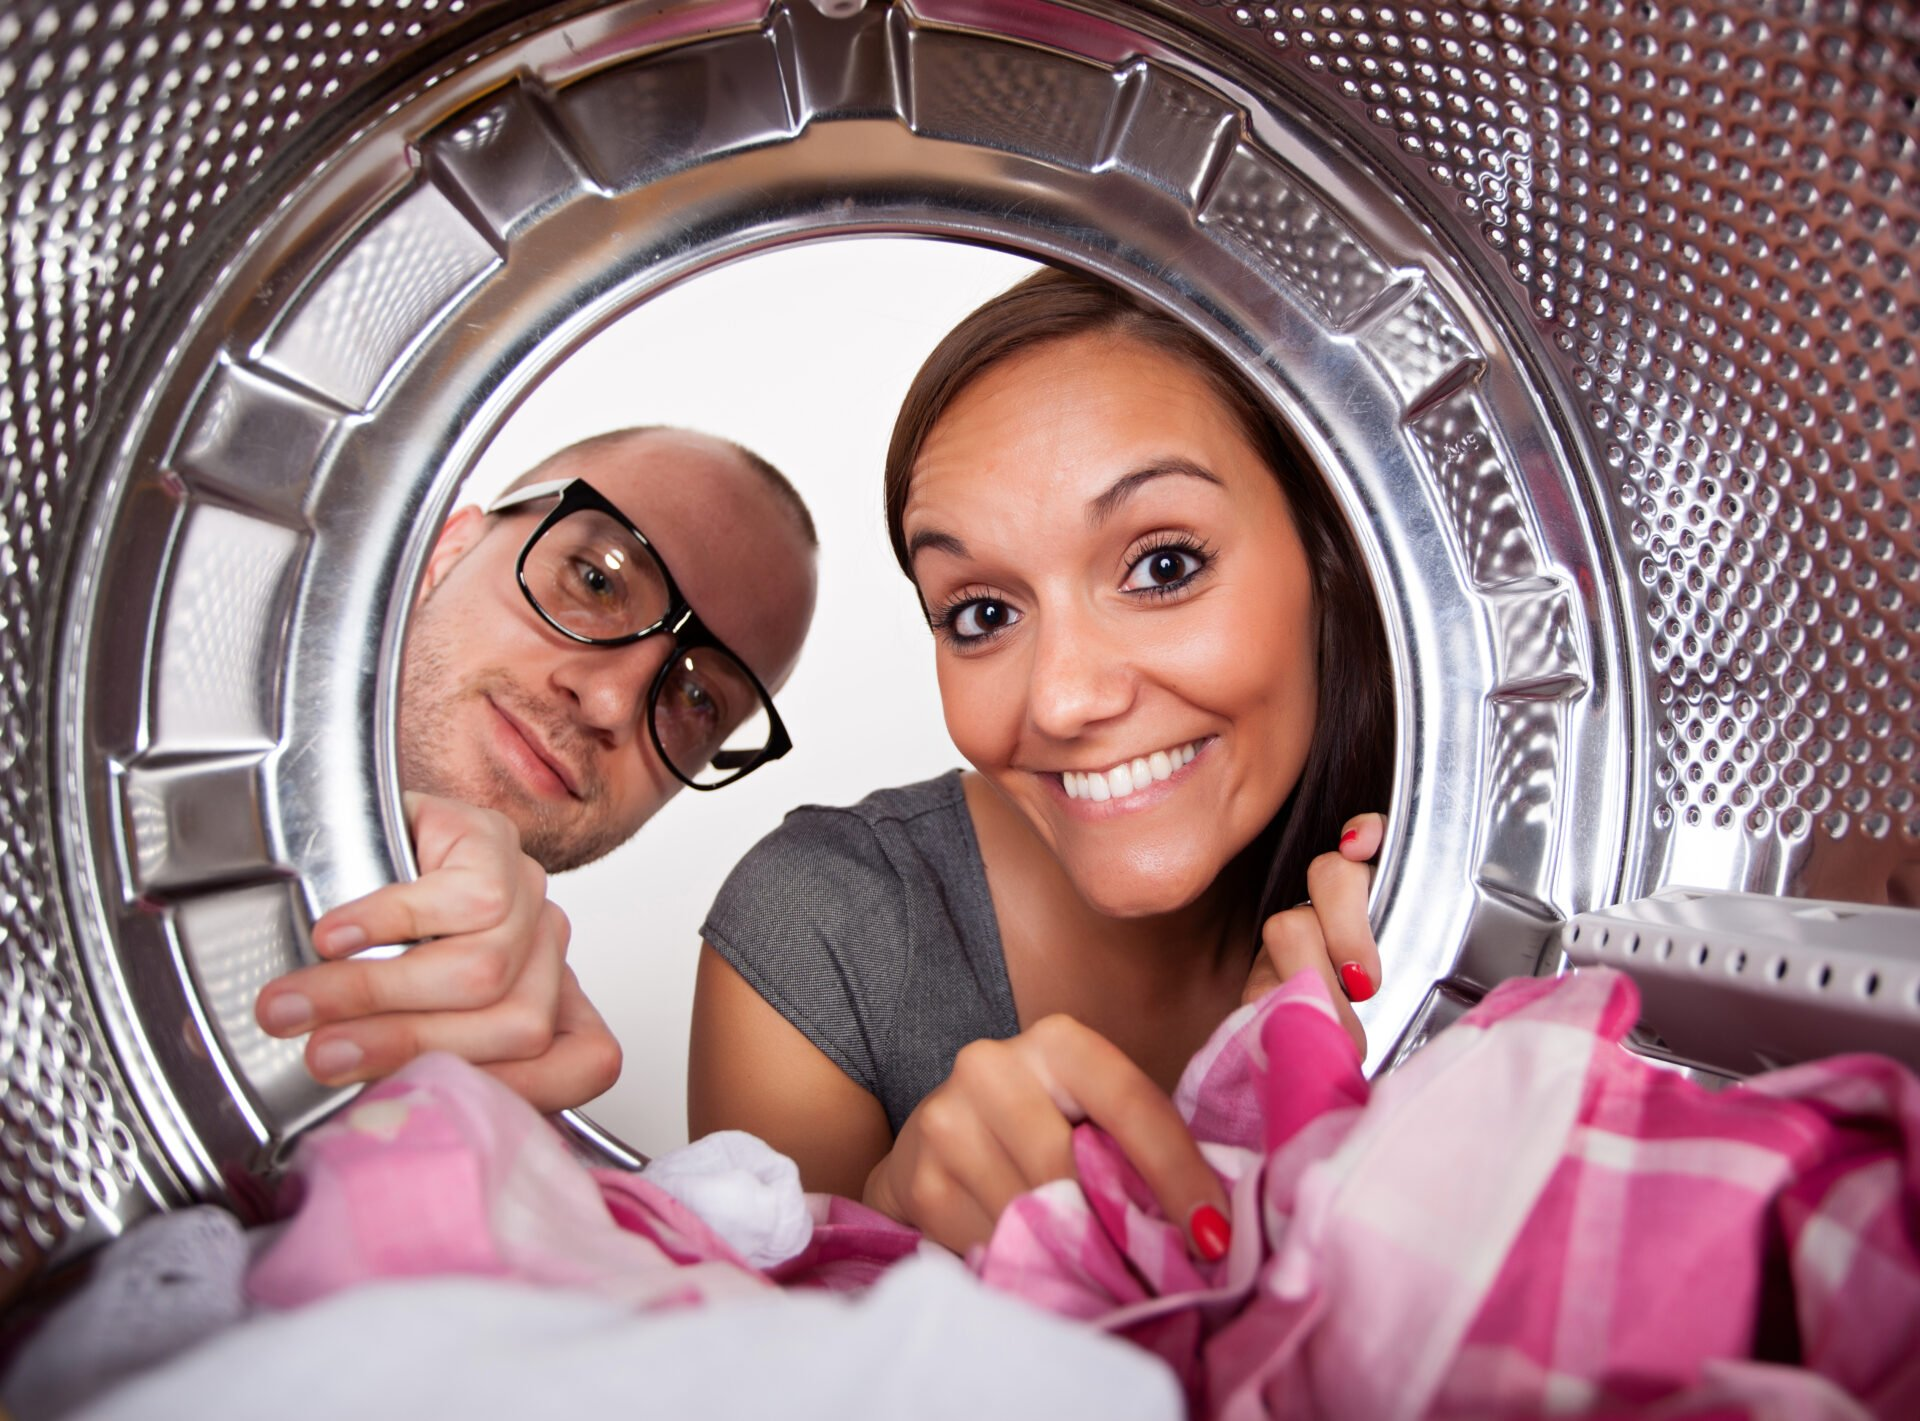 woman and man pulling clothes out of dryer